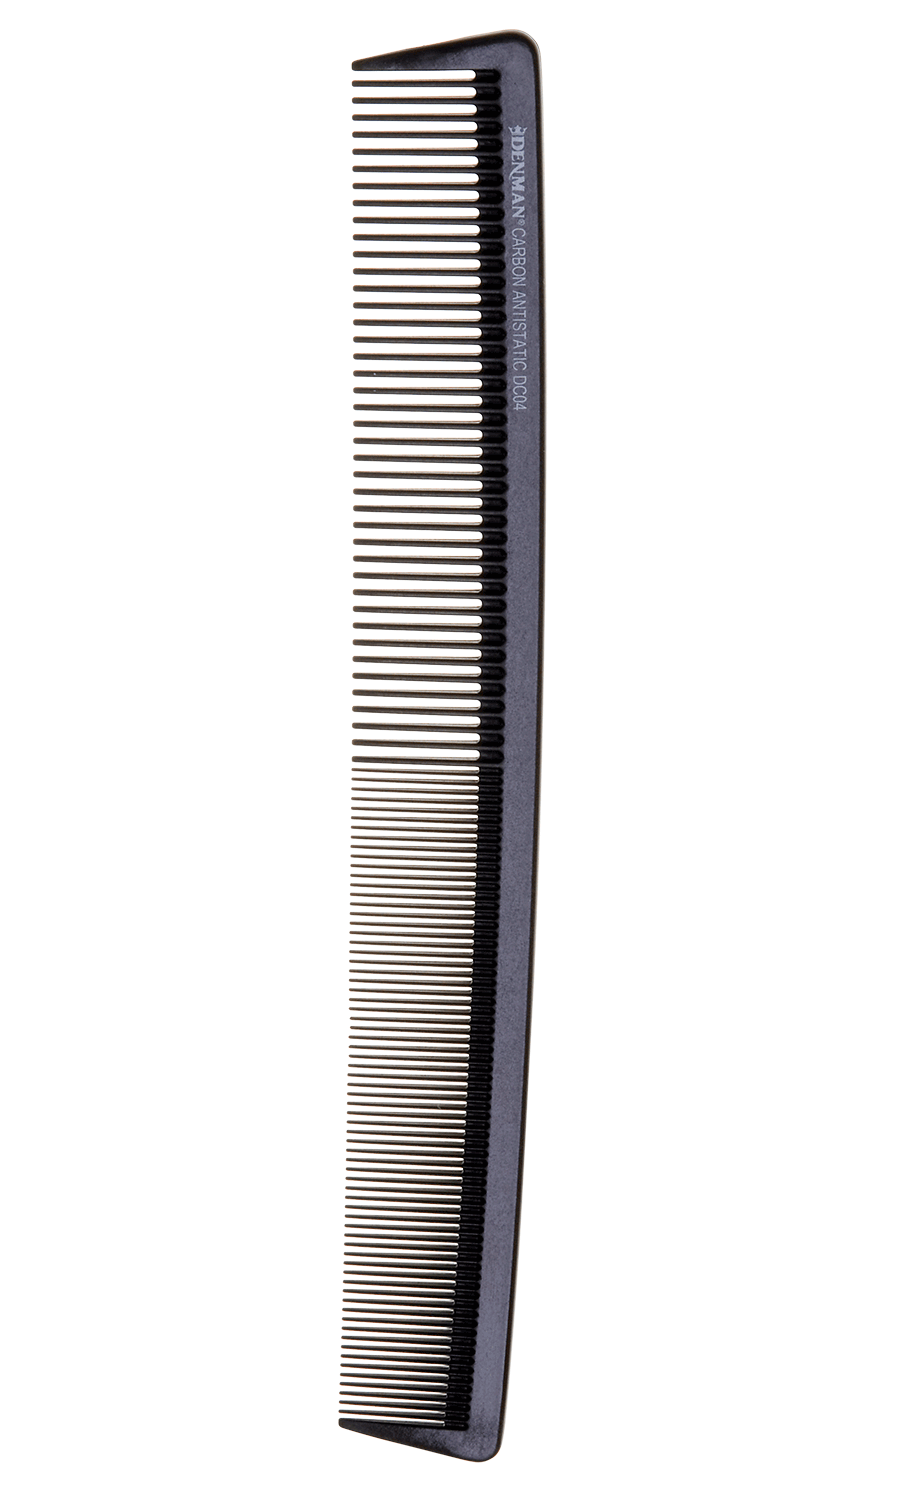 DC04 Large Cutting Comb